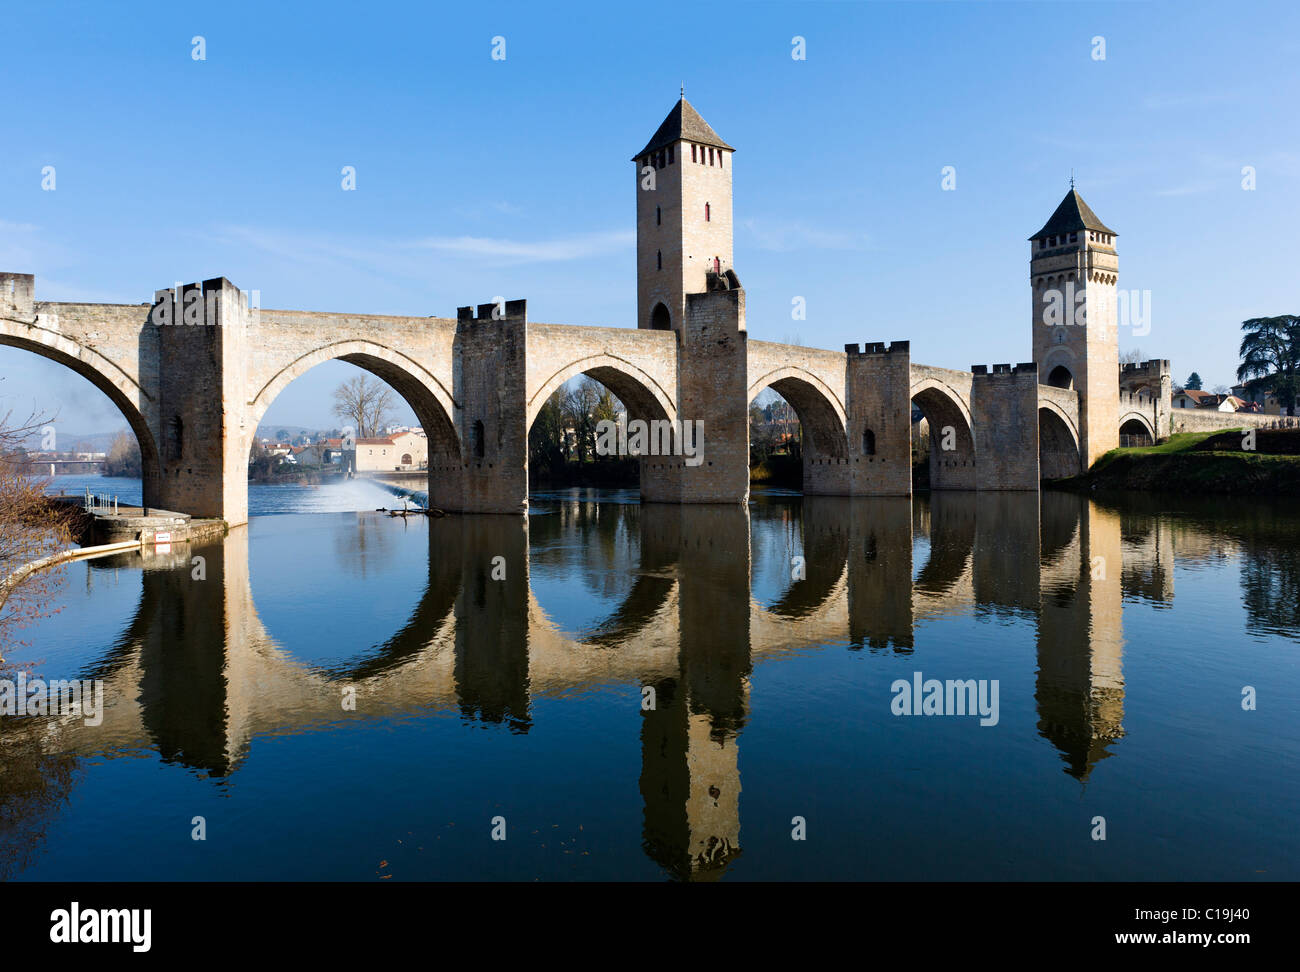 The medieval Pont Valentre over the River Lot, Cahors, The Lot, France - Stock Image